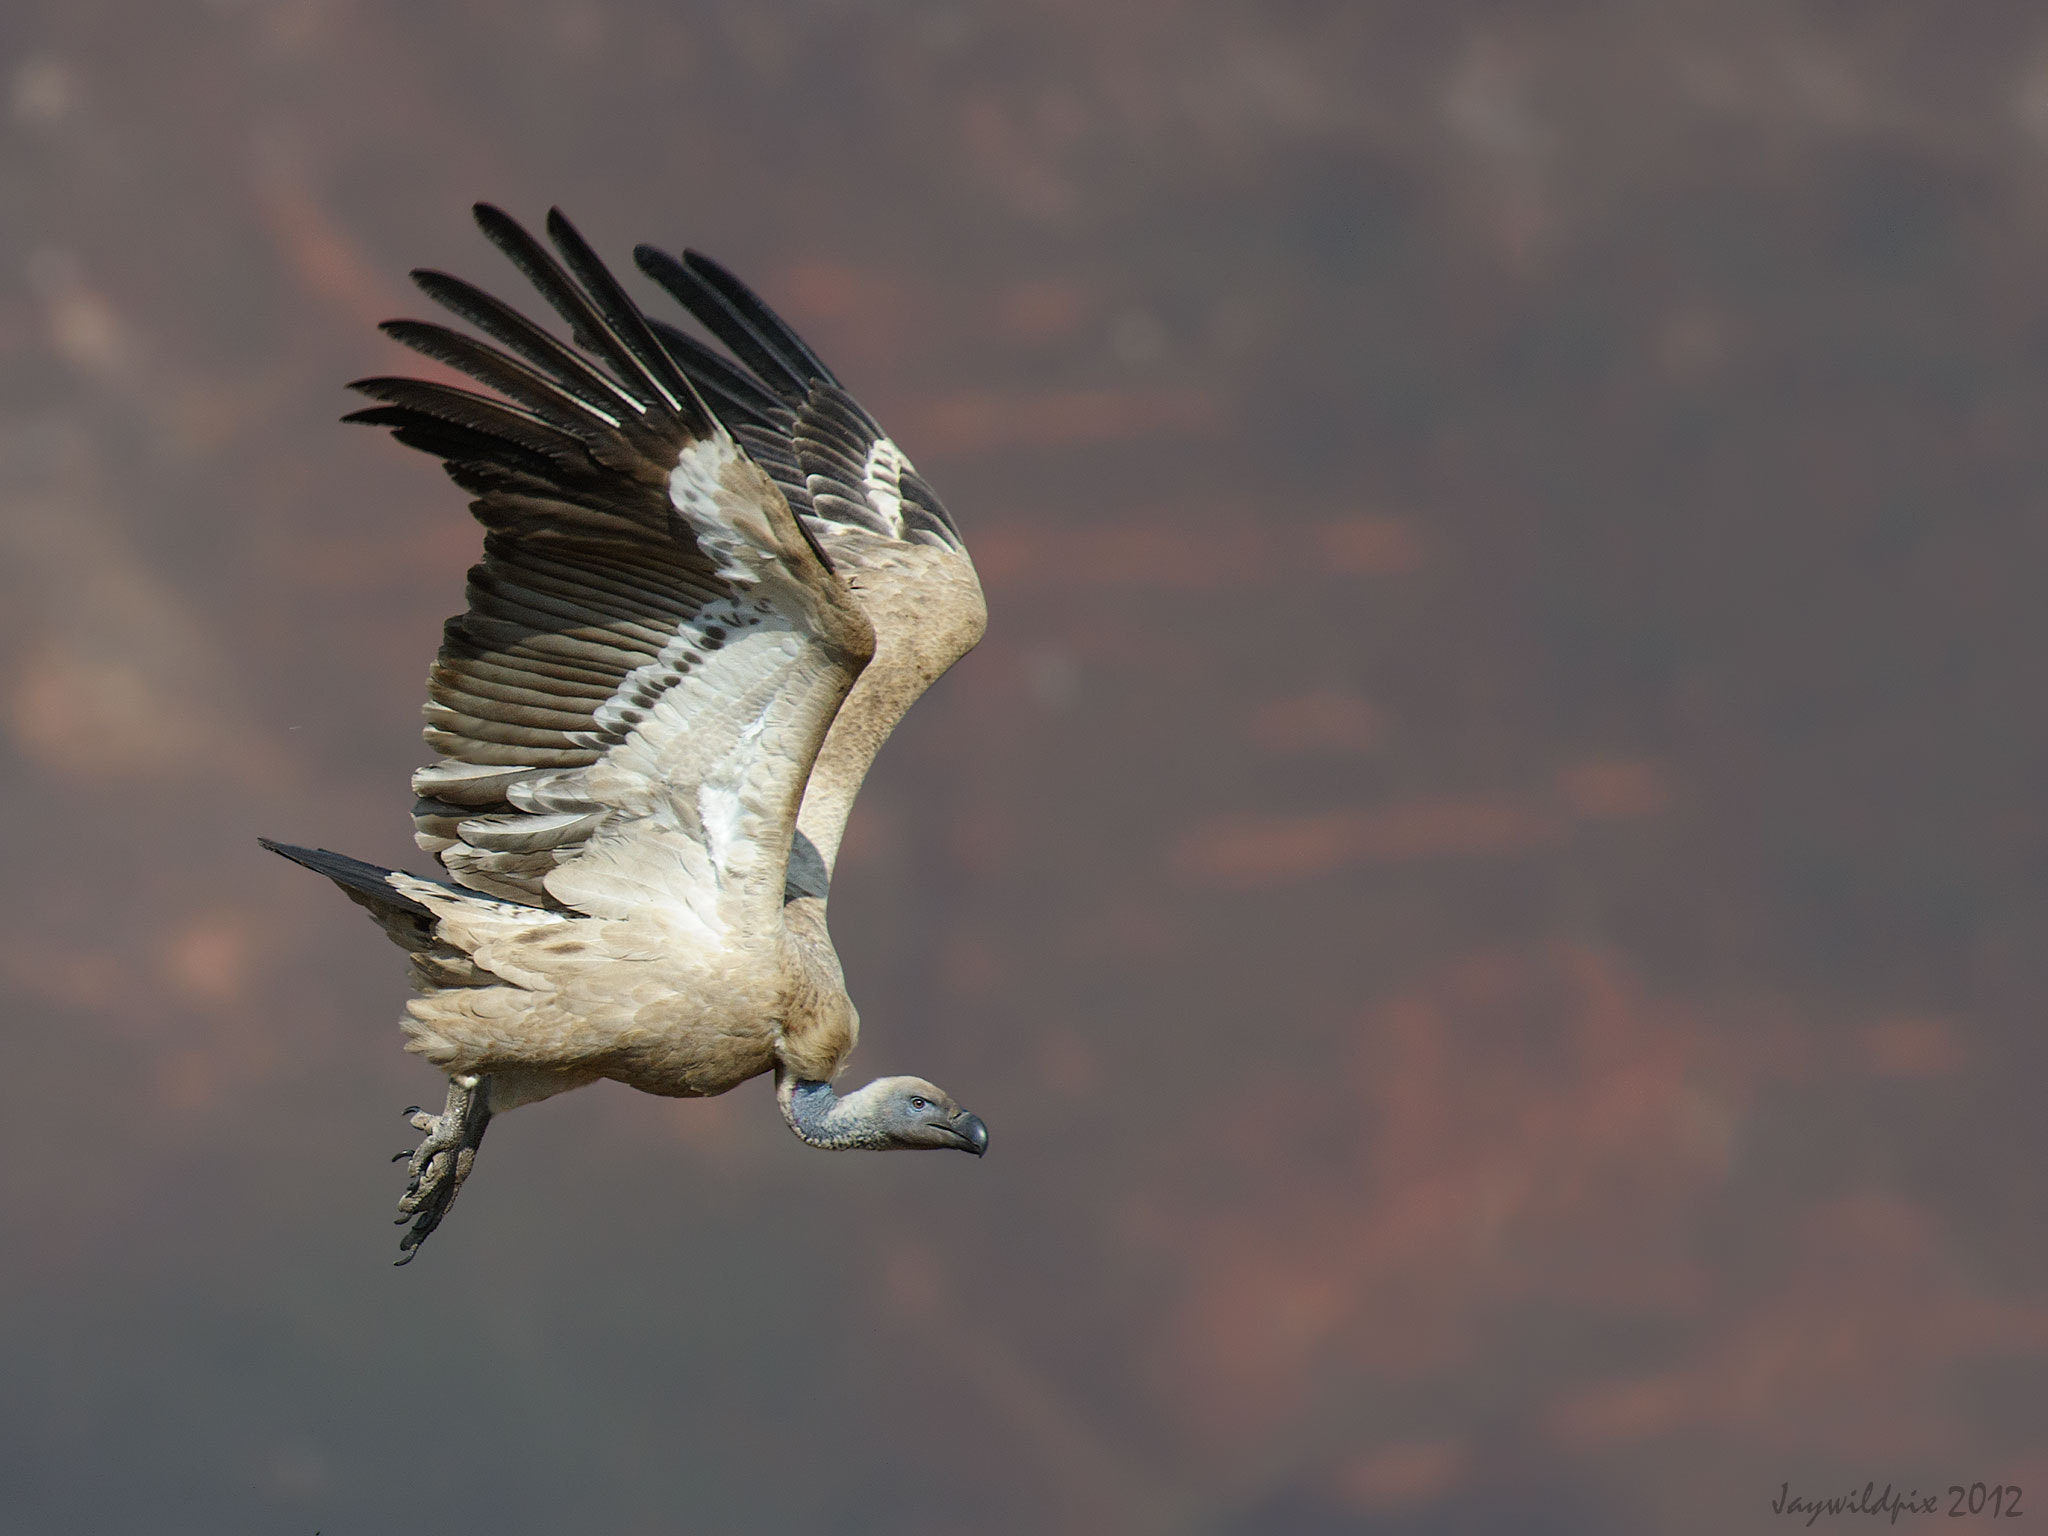 Photograph Cape Vulture. South Africa by Jay van Rensburg on 500px